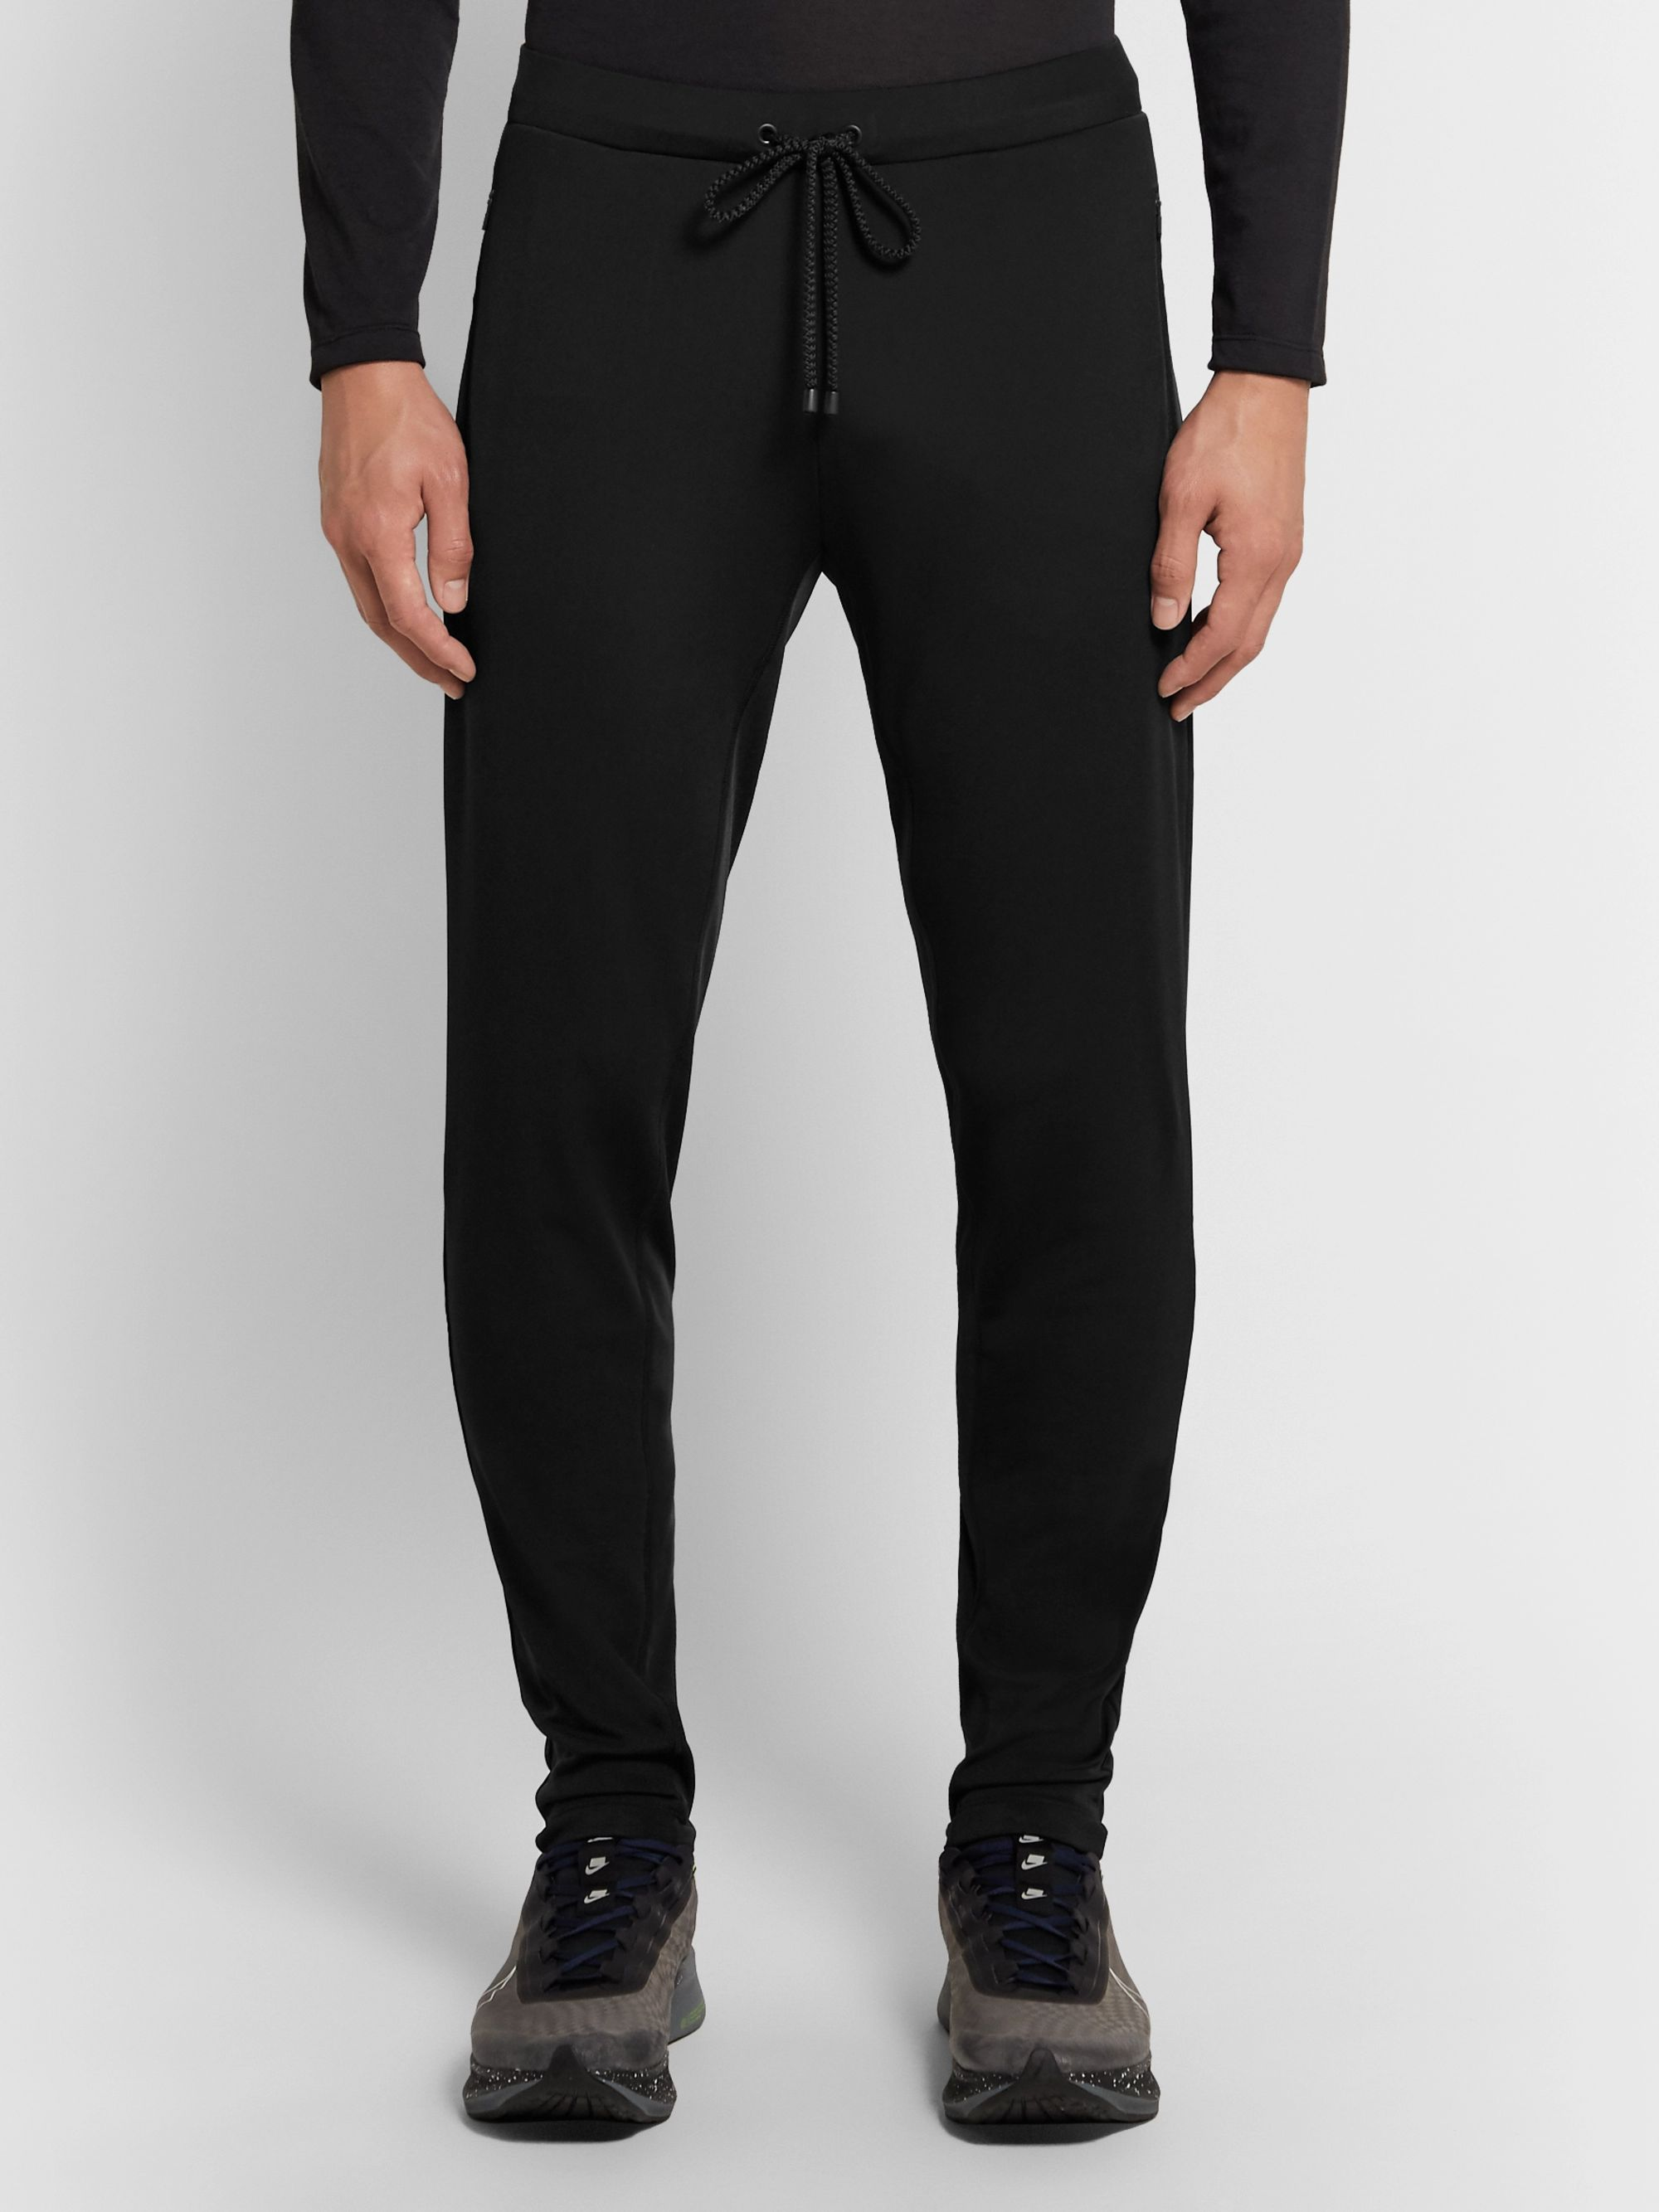 Iffley Road Royston Fleece-Back Jersey Sweatpants